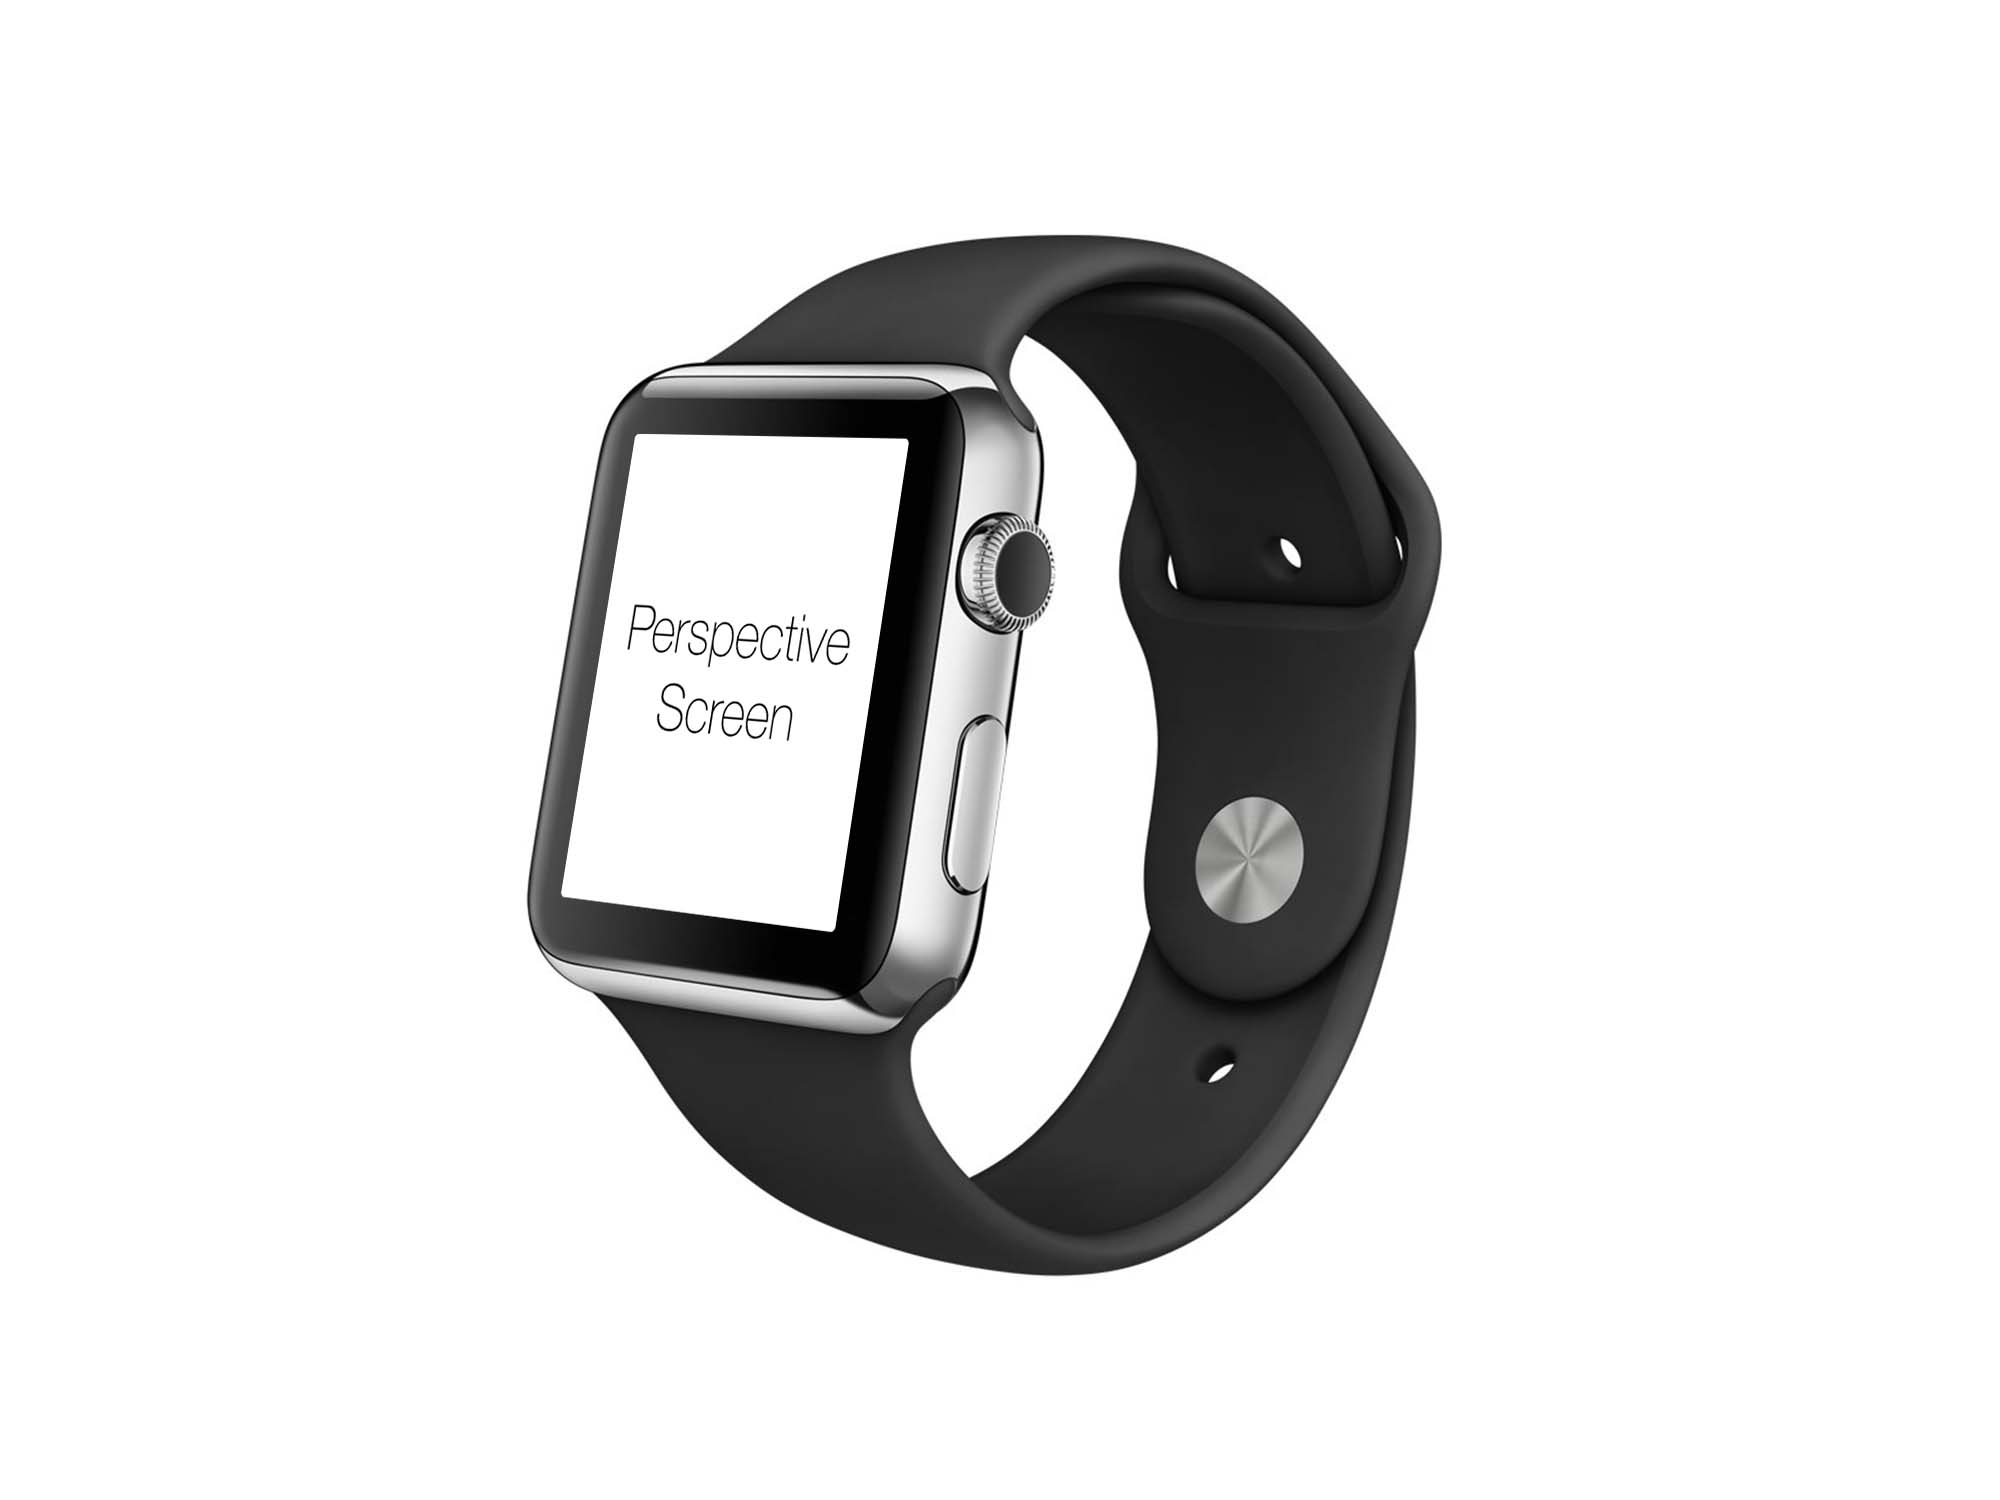 Apple Watch Mockup Perspective